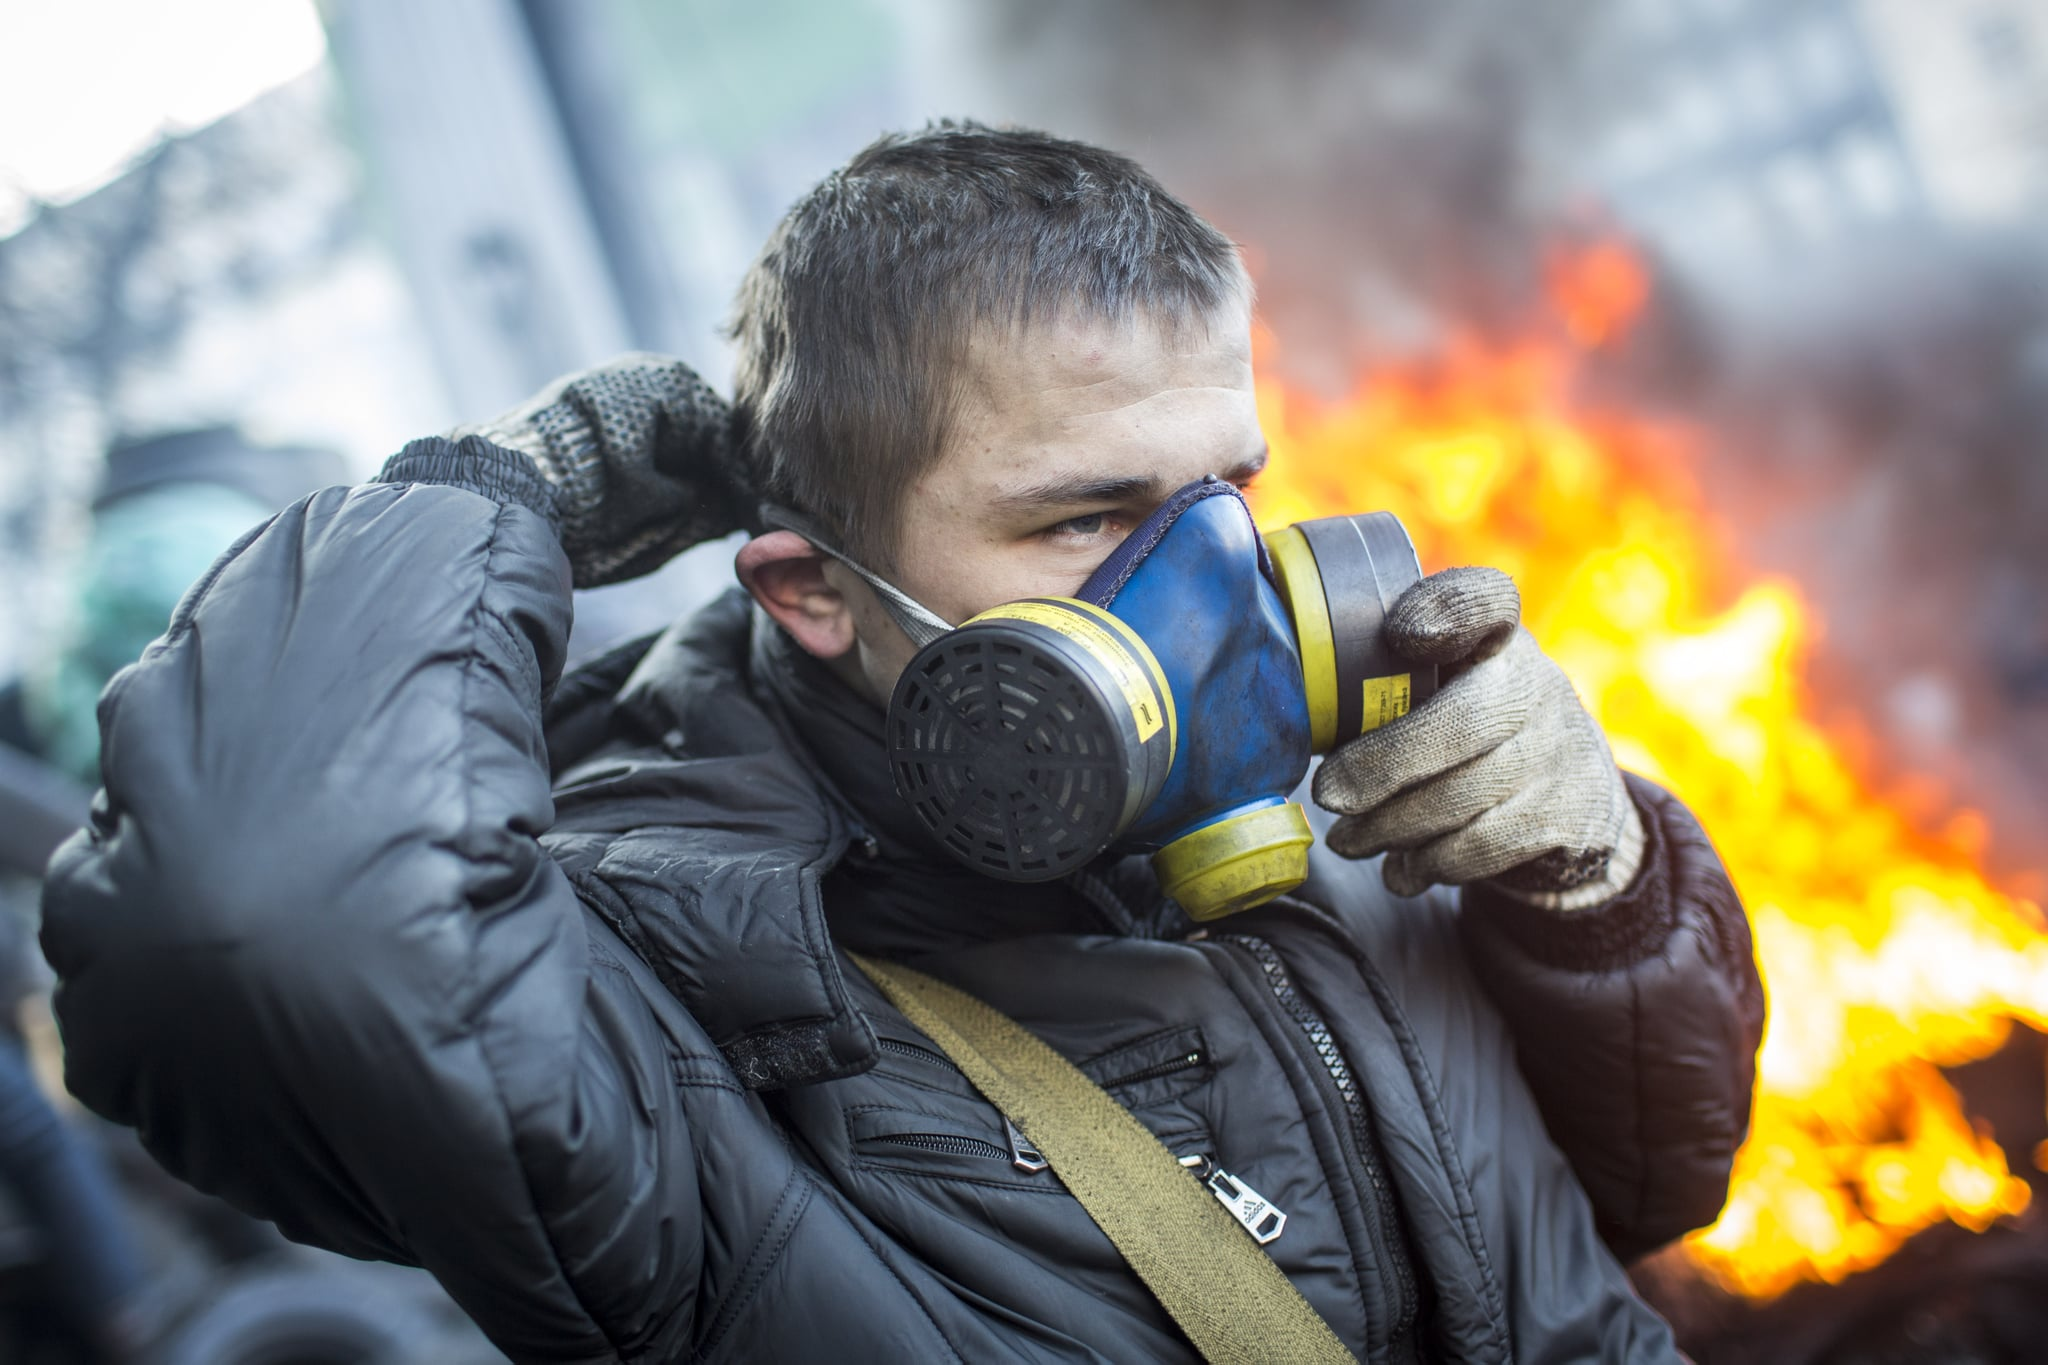 A protester put on his gas mask near the burning piles.